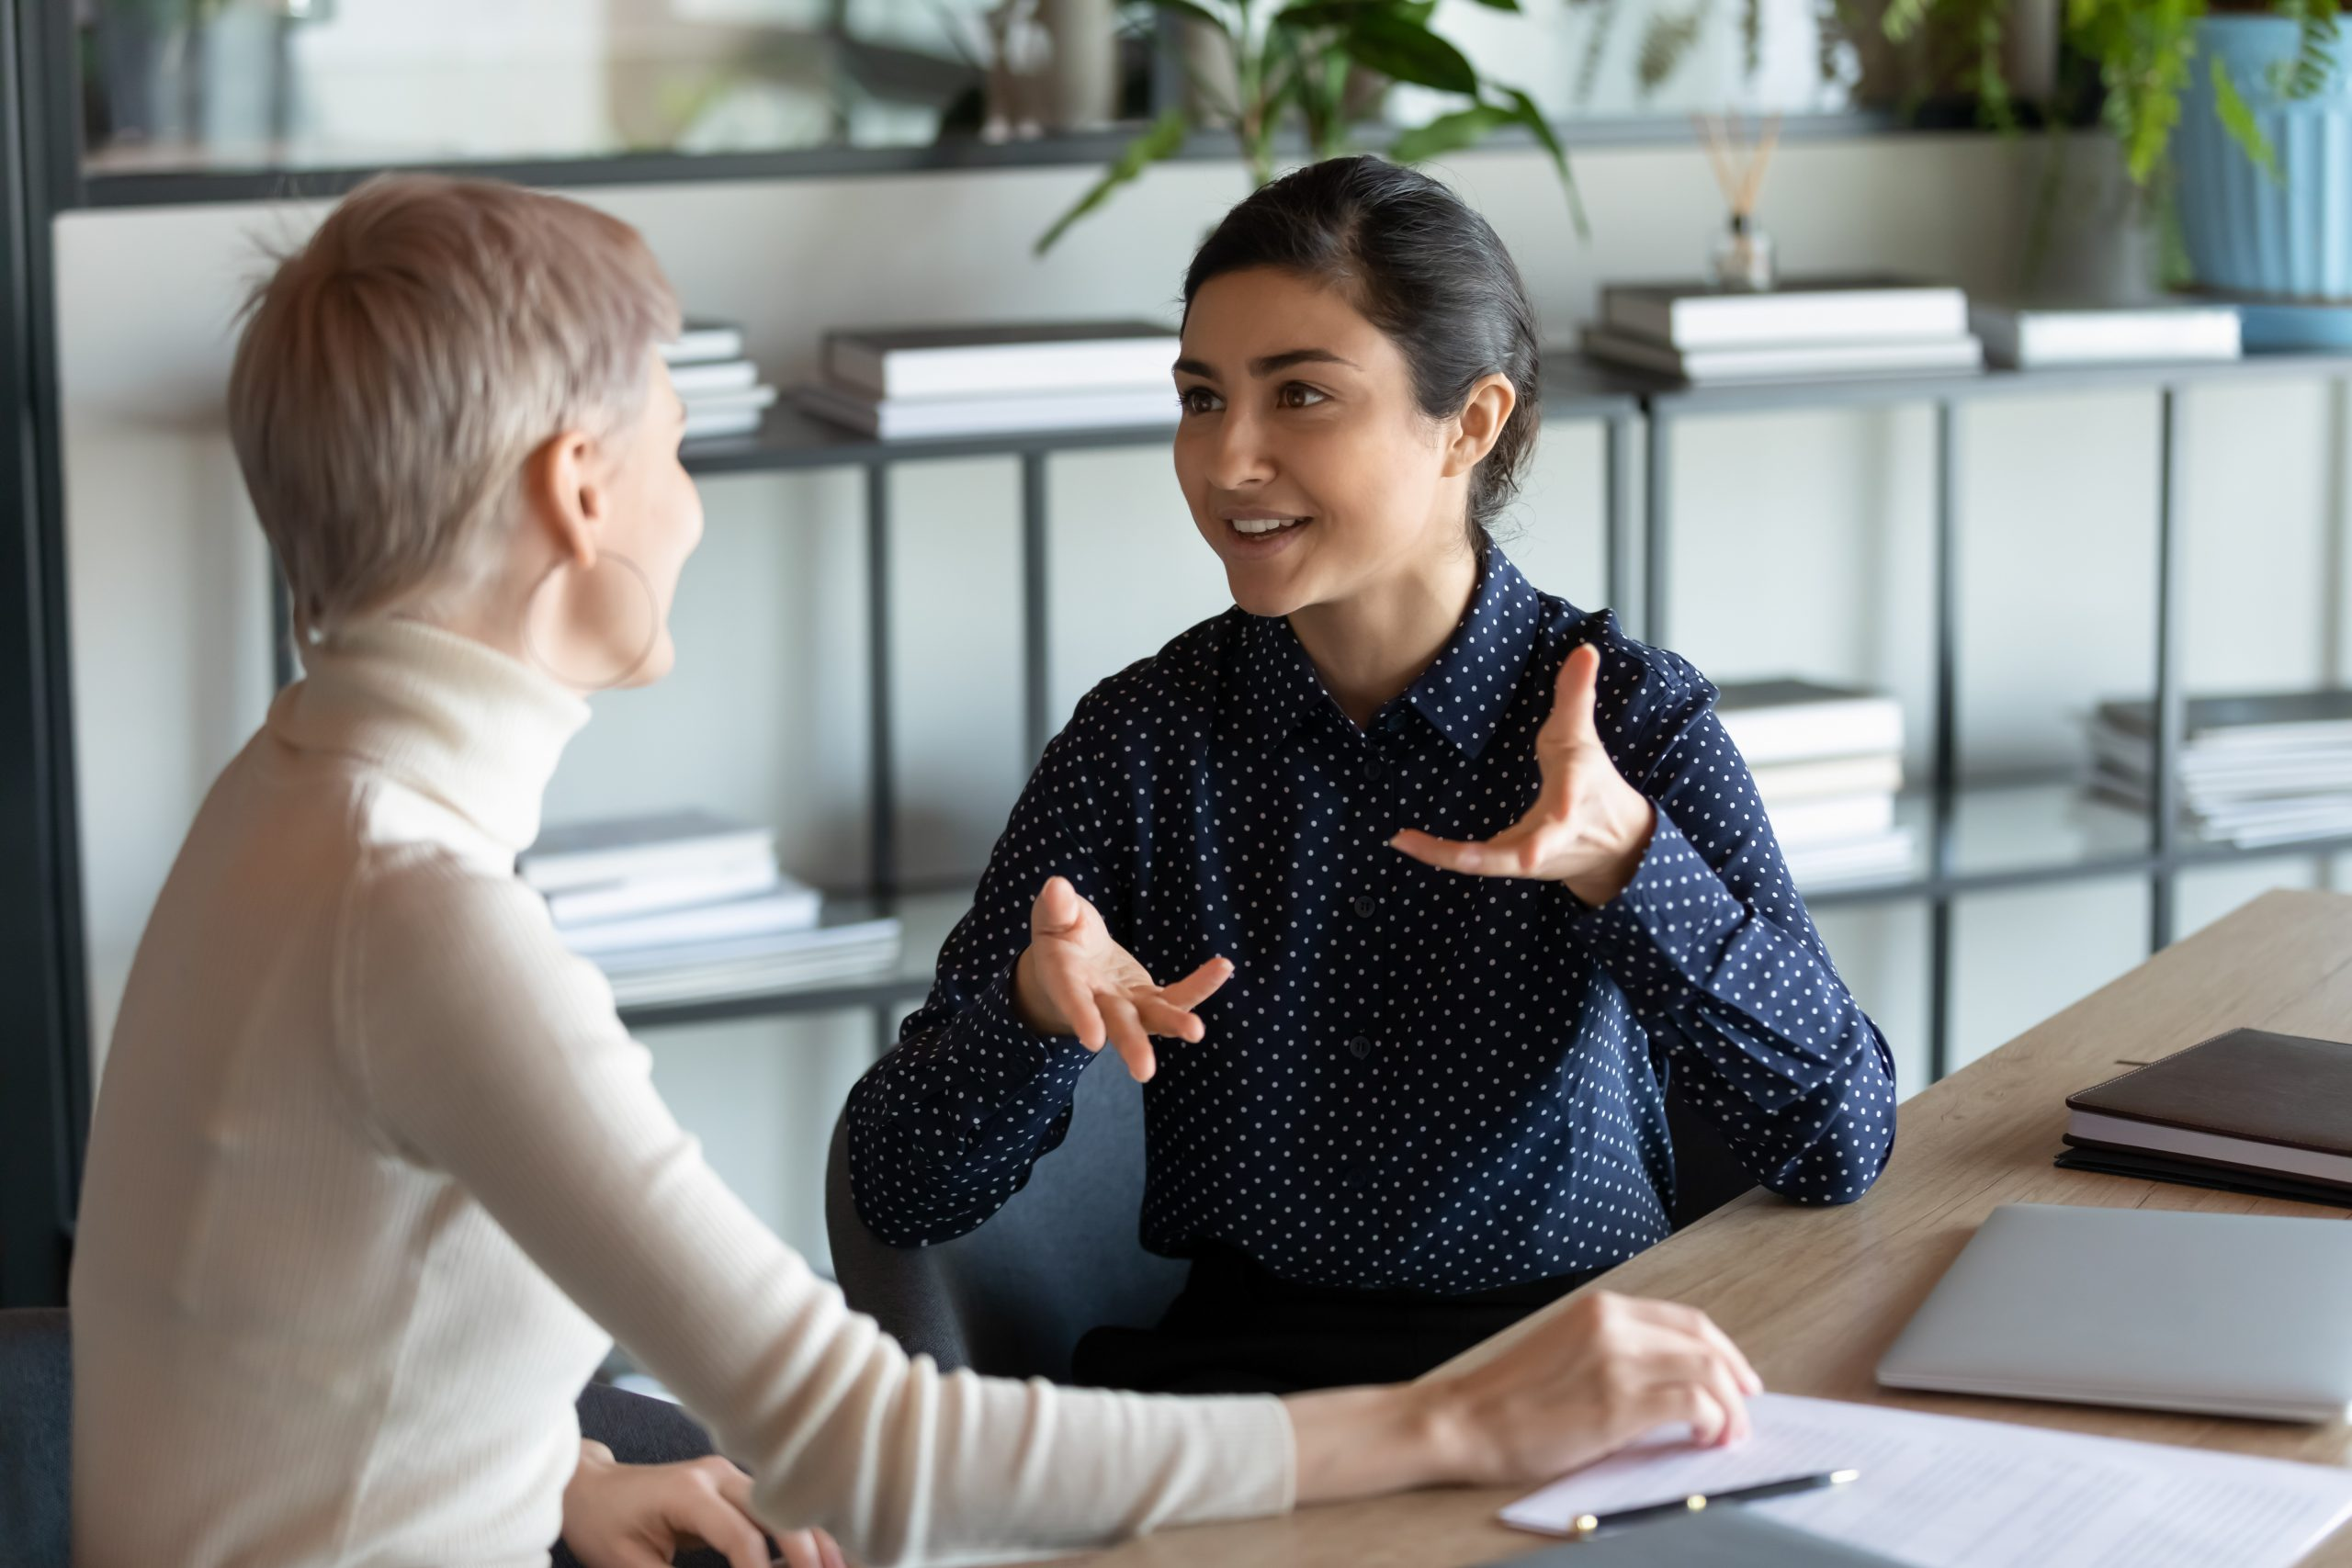 Indian female employee talking with Caucasian mate seated at workplace desk expresses her opinion on current issue, proposes solution to problem, share thoughts while working on common project concept